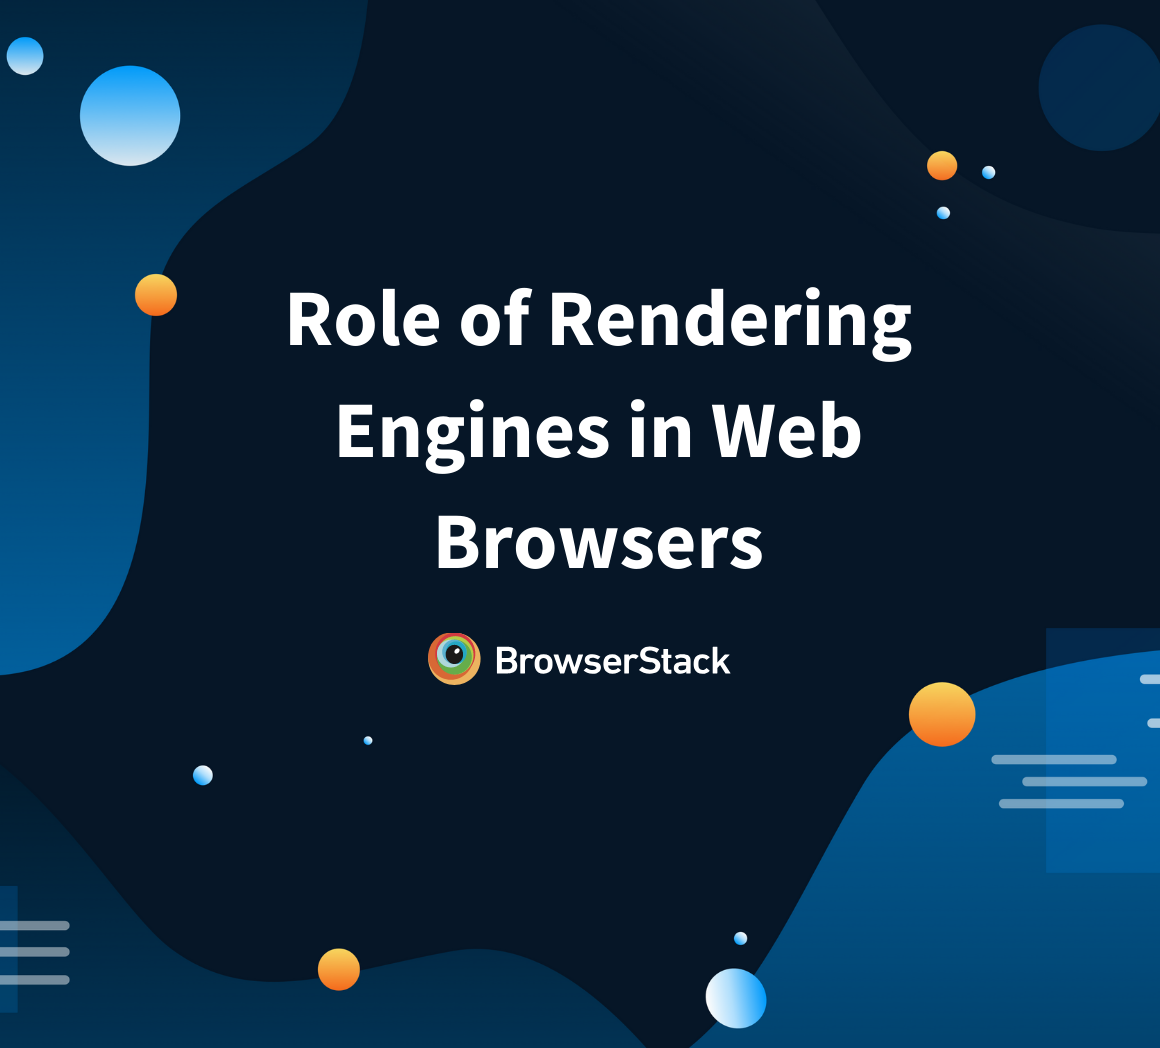 Role of Rendering Engines